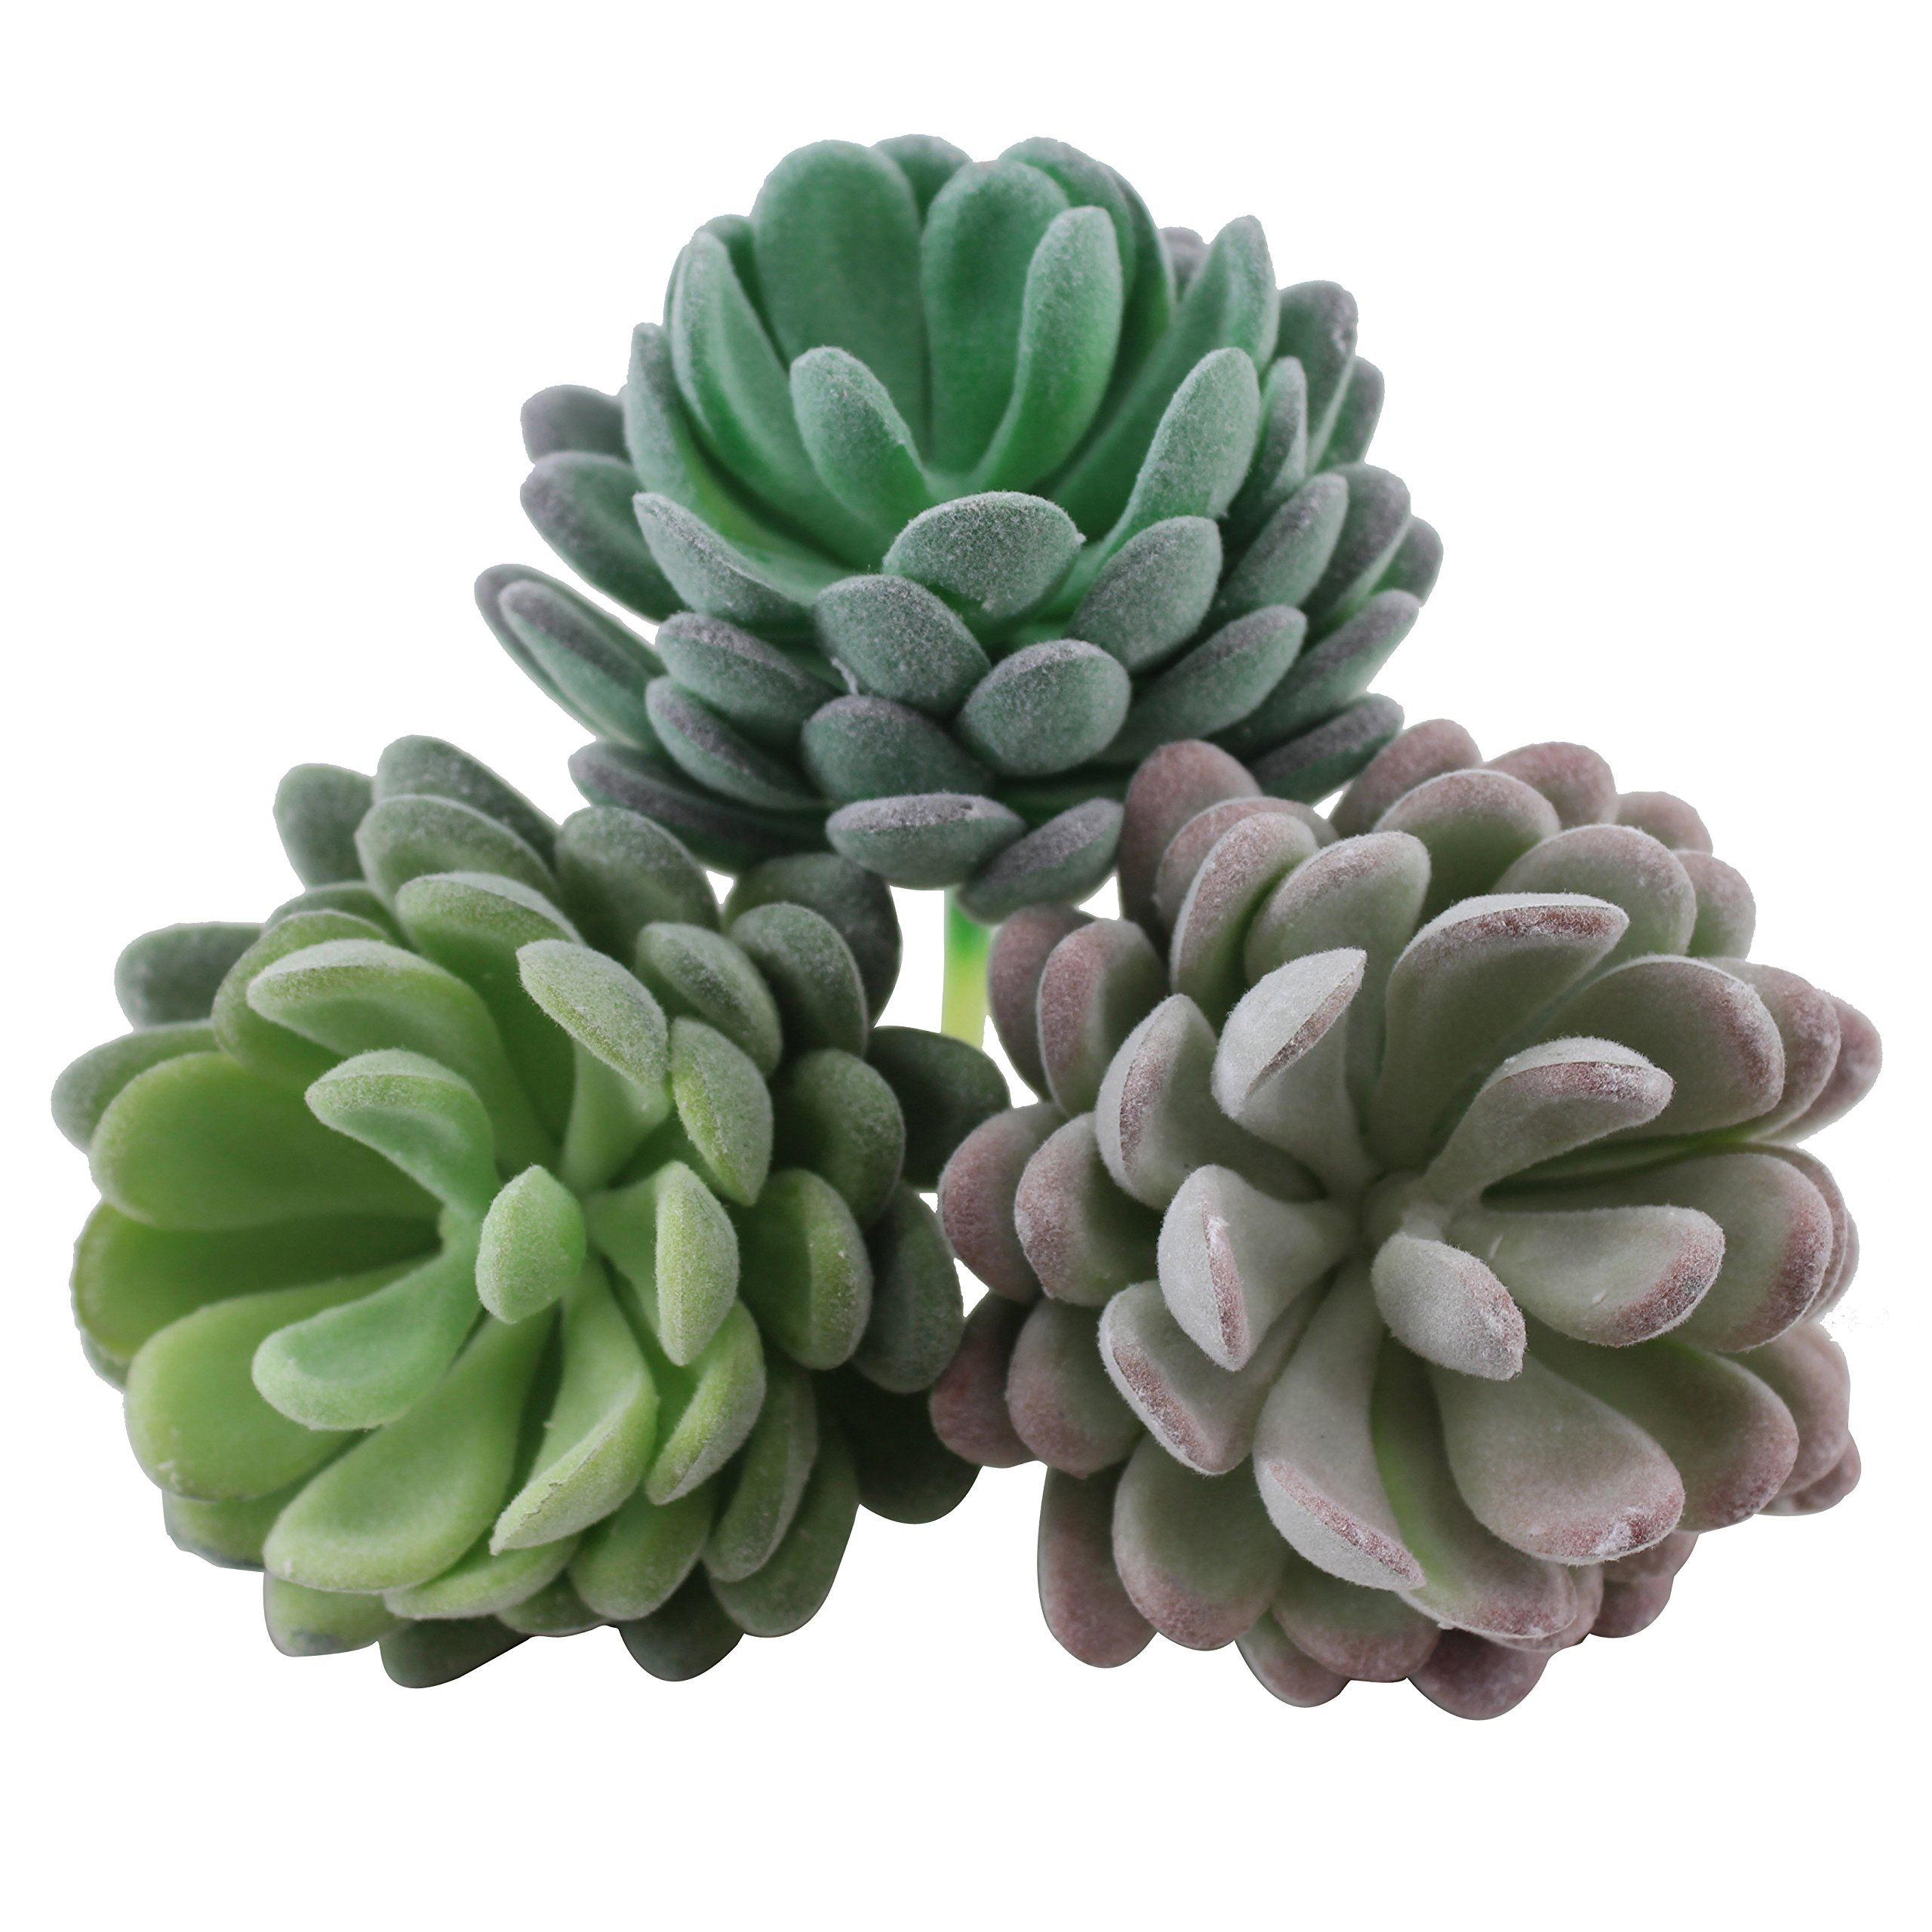 Greatflower Pack of 6 Mixed Colors Flocking Coating Artificial Succulents Fake Plant DIY Materials,2.7''